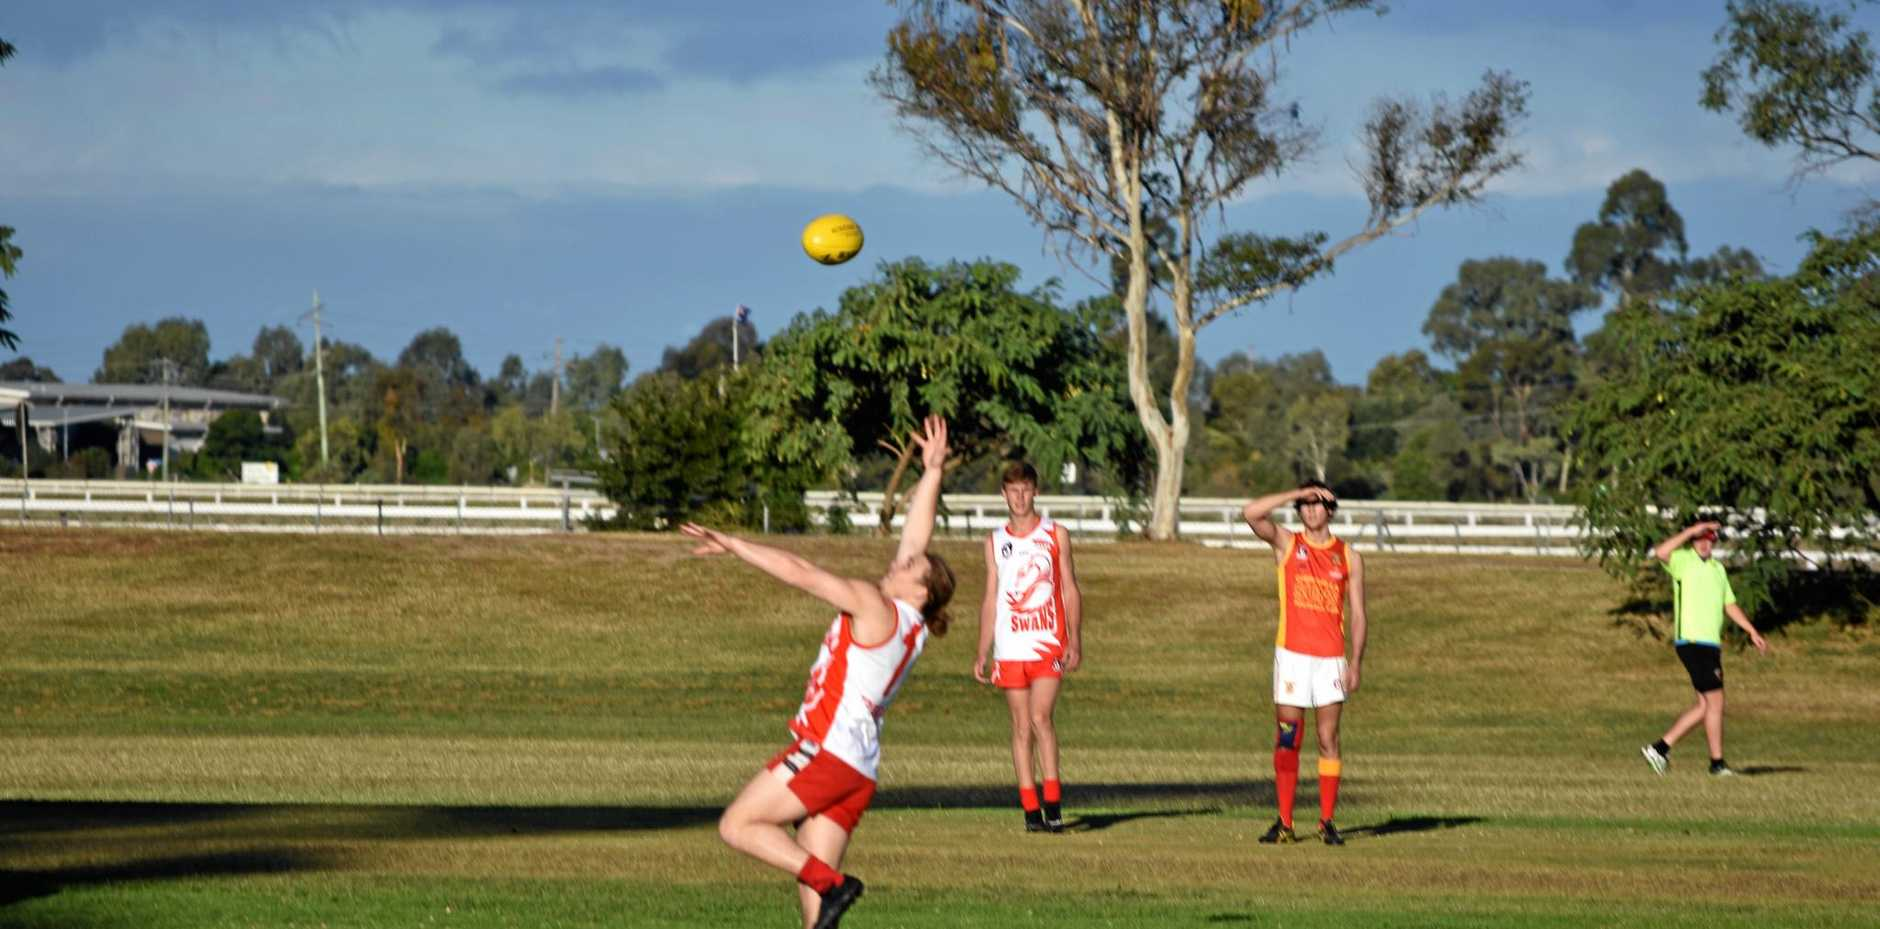 VICTORY: Dalby secure another win.